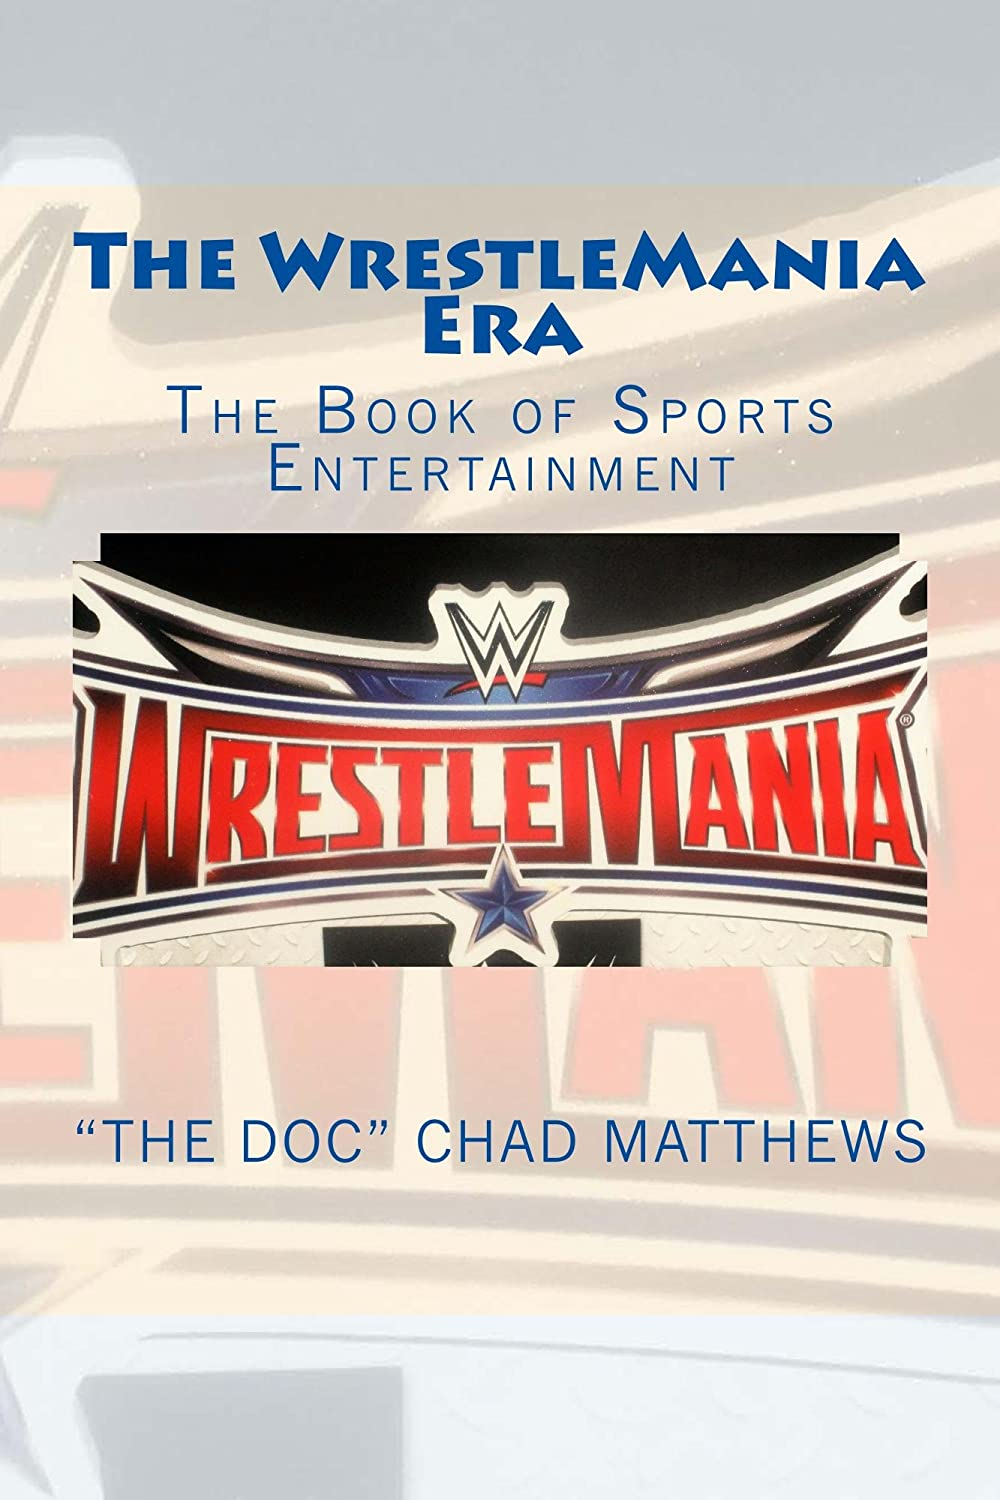 The Wrestlemania